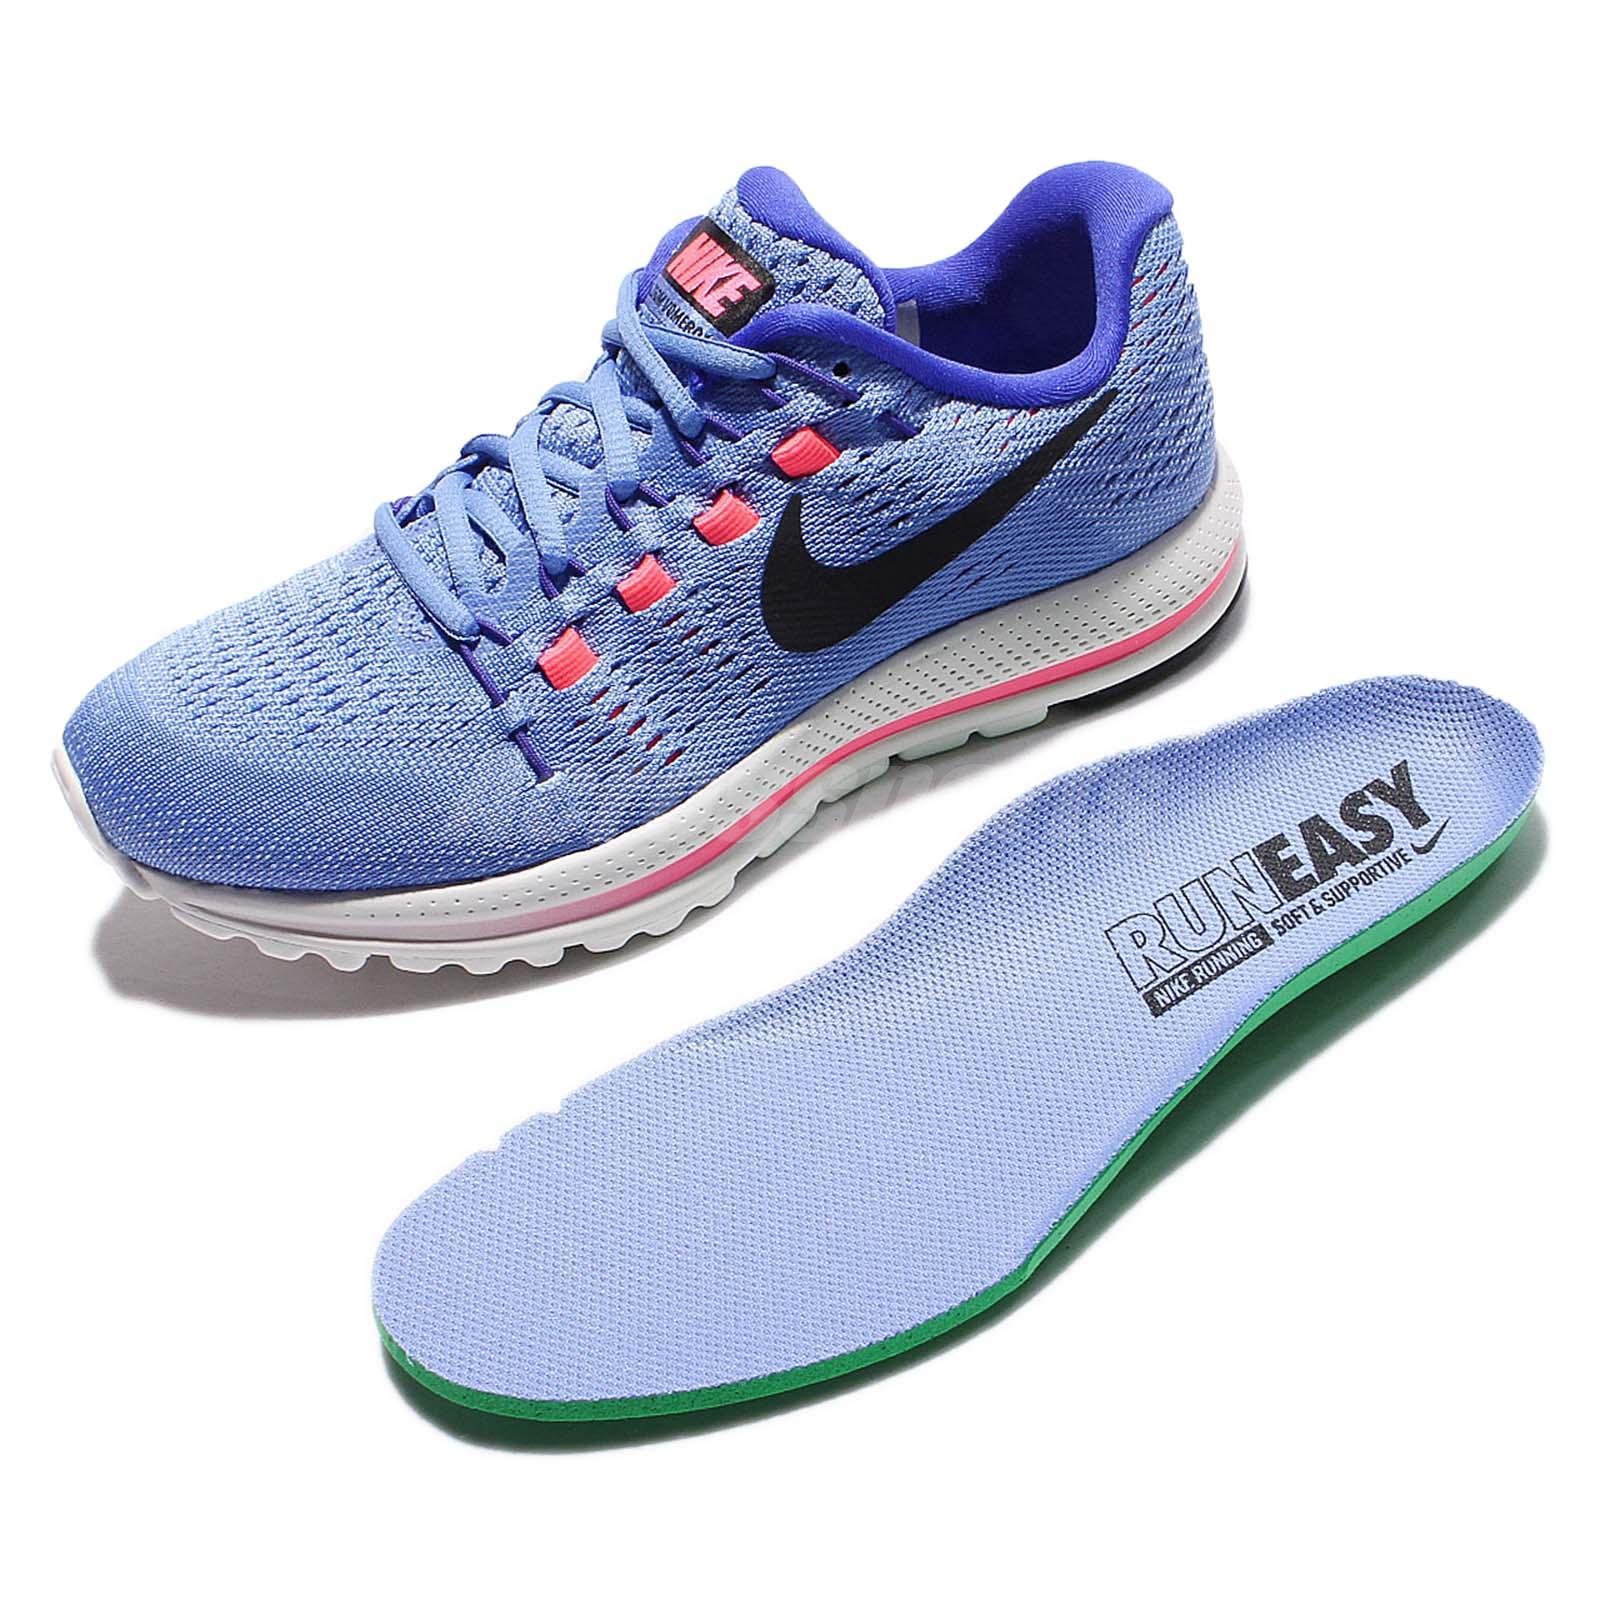 wmns nike air zoom vomero 12 blue pink women running shoes sneakers 863766 400 ebay. Black Bedroom Furniture Sets. Home Design Ideas